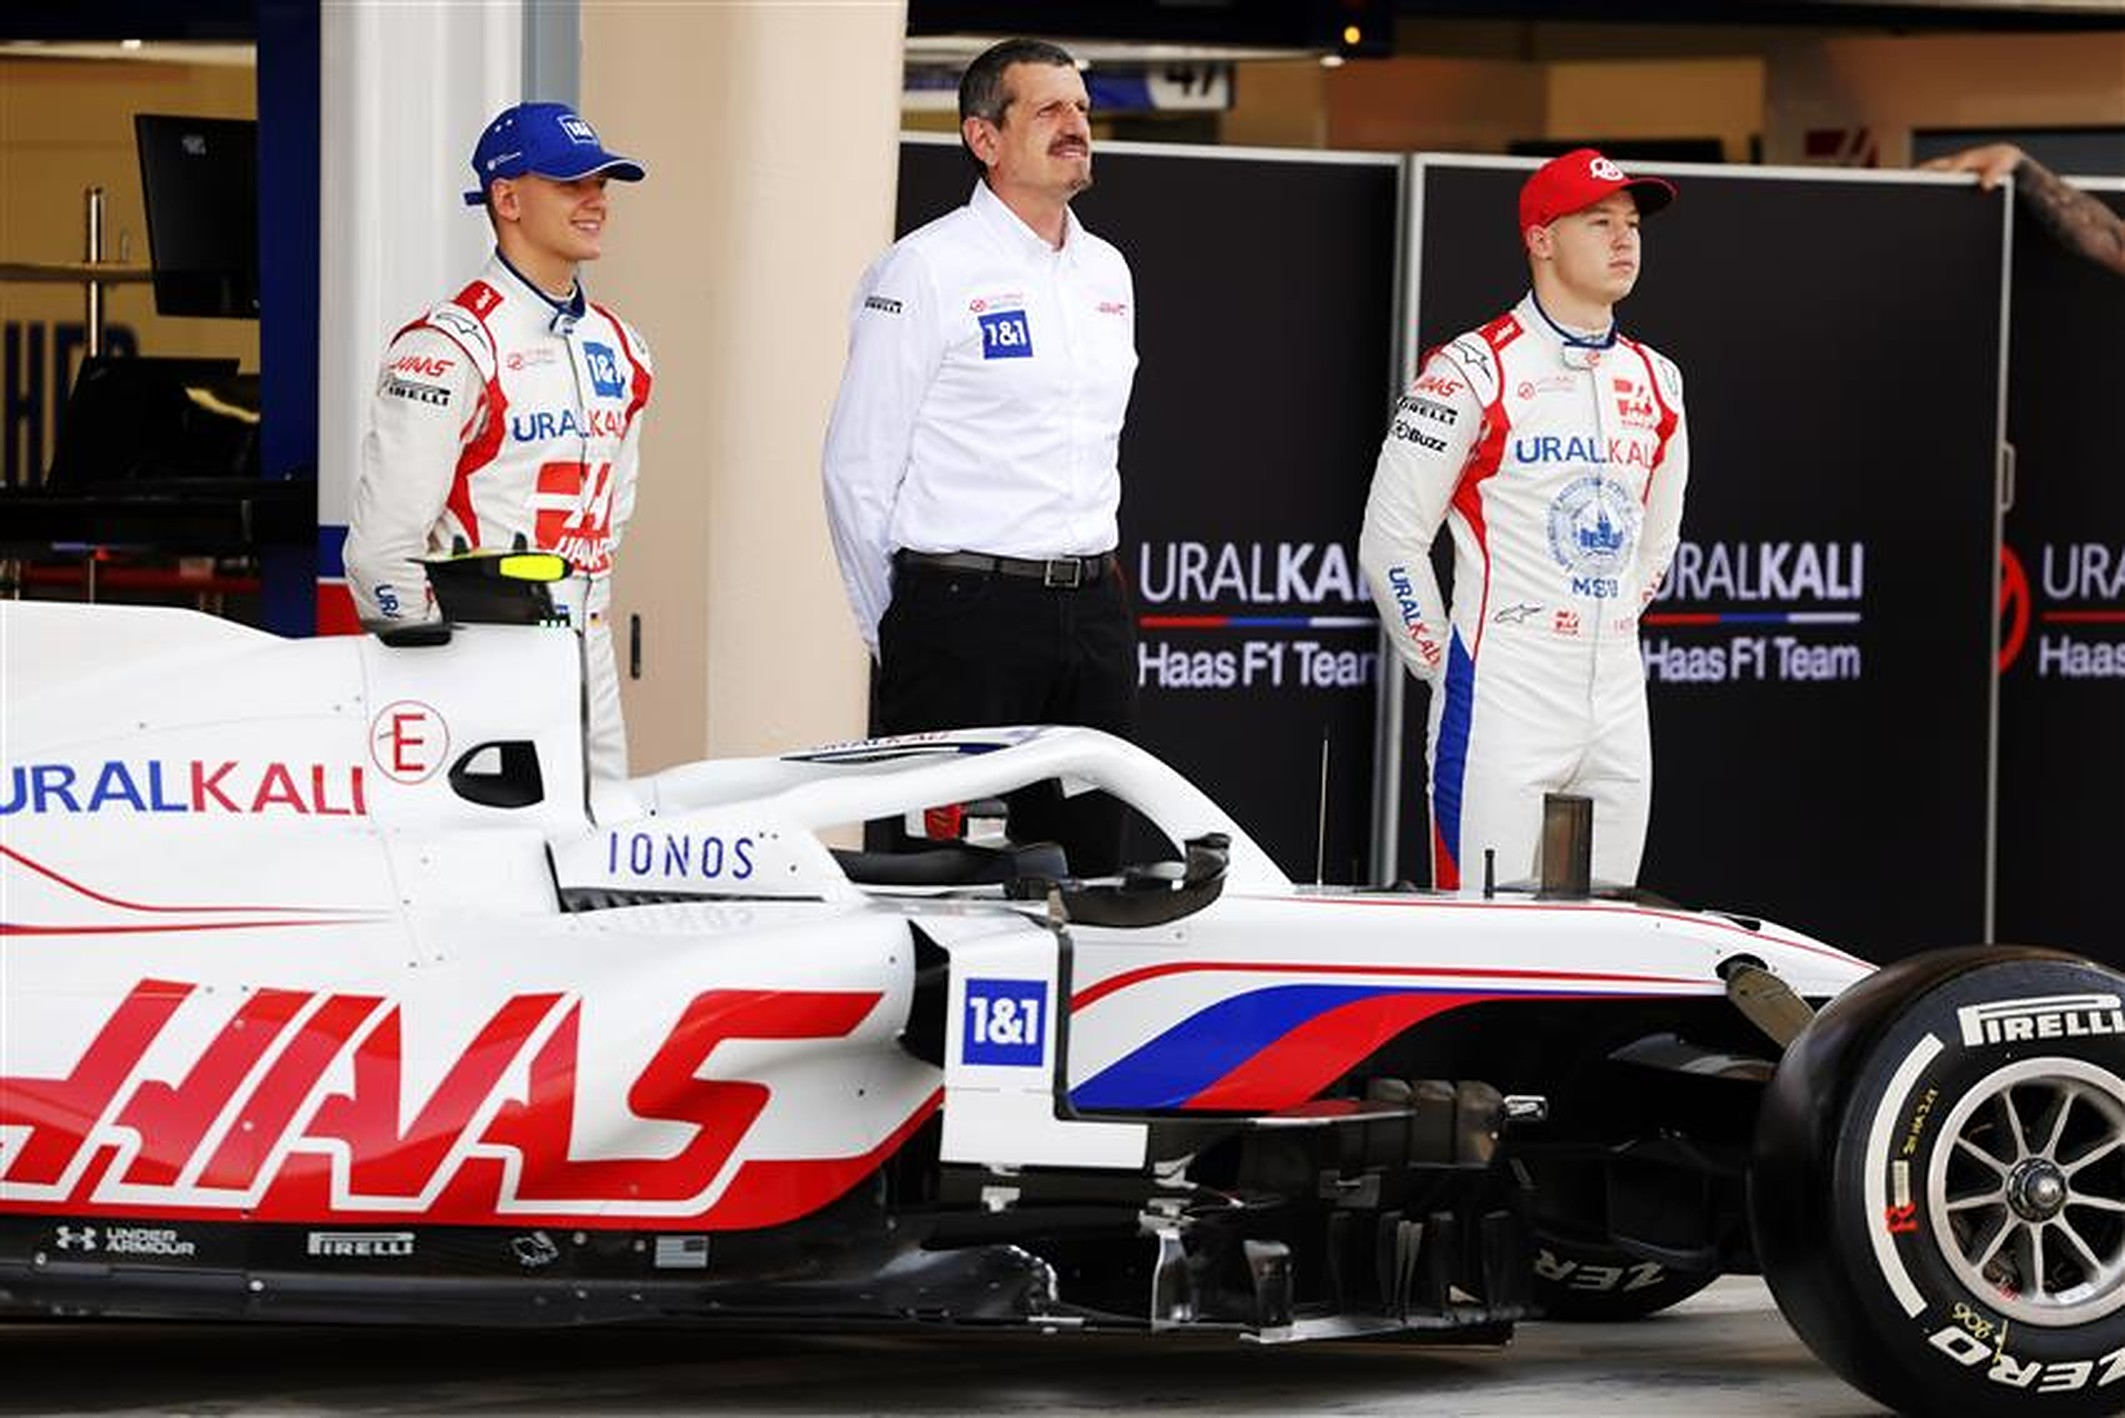 Mick Schumacher, Guenther Steiner and Nikita Mazepin at Haas F1 - Formula1news.co.uk